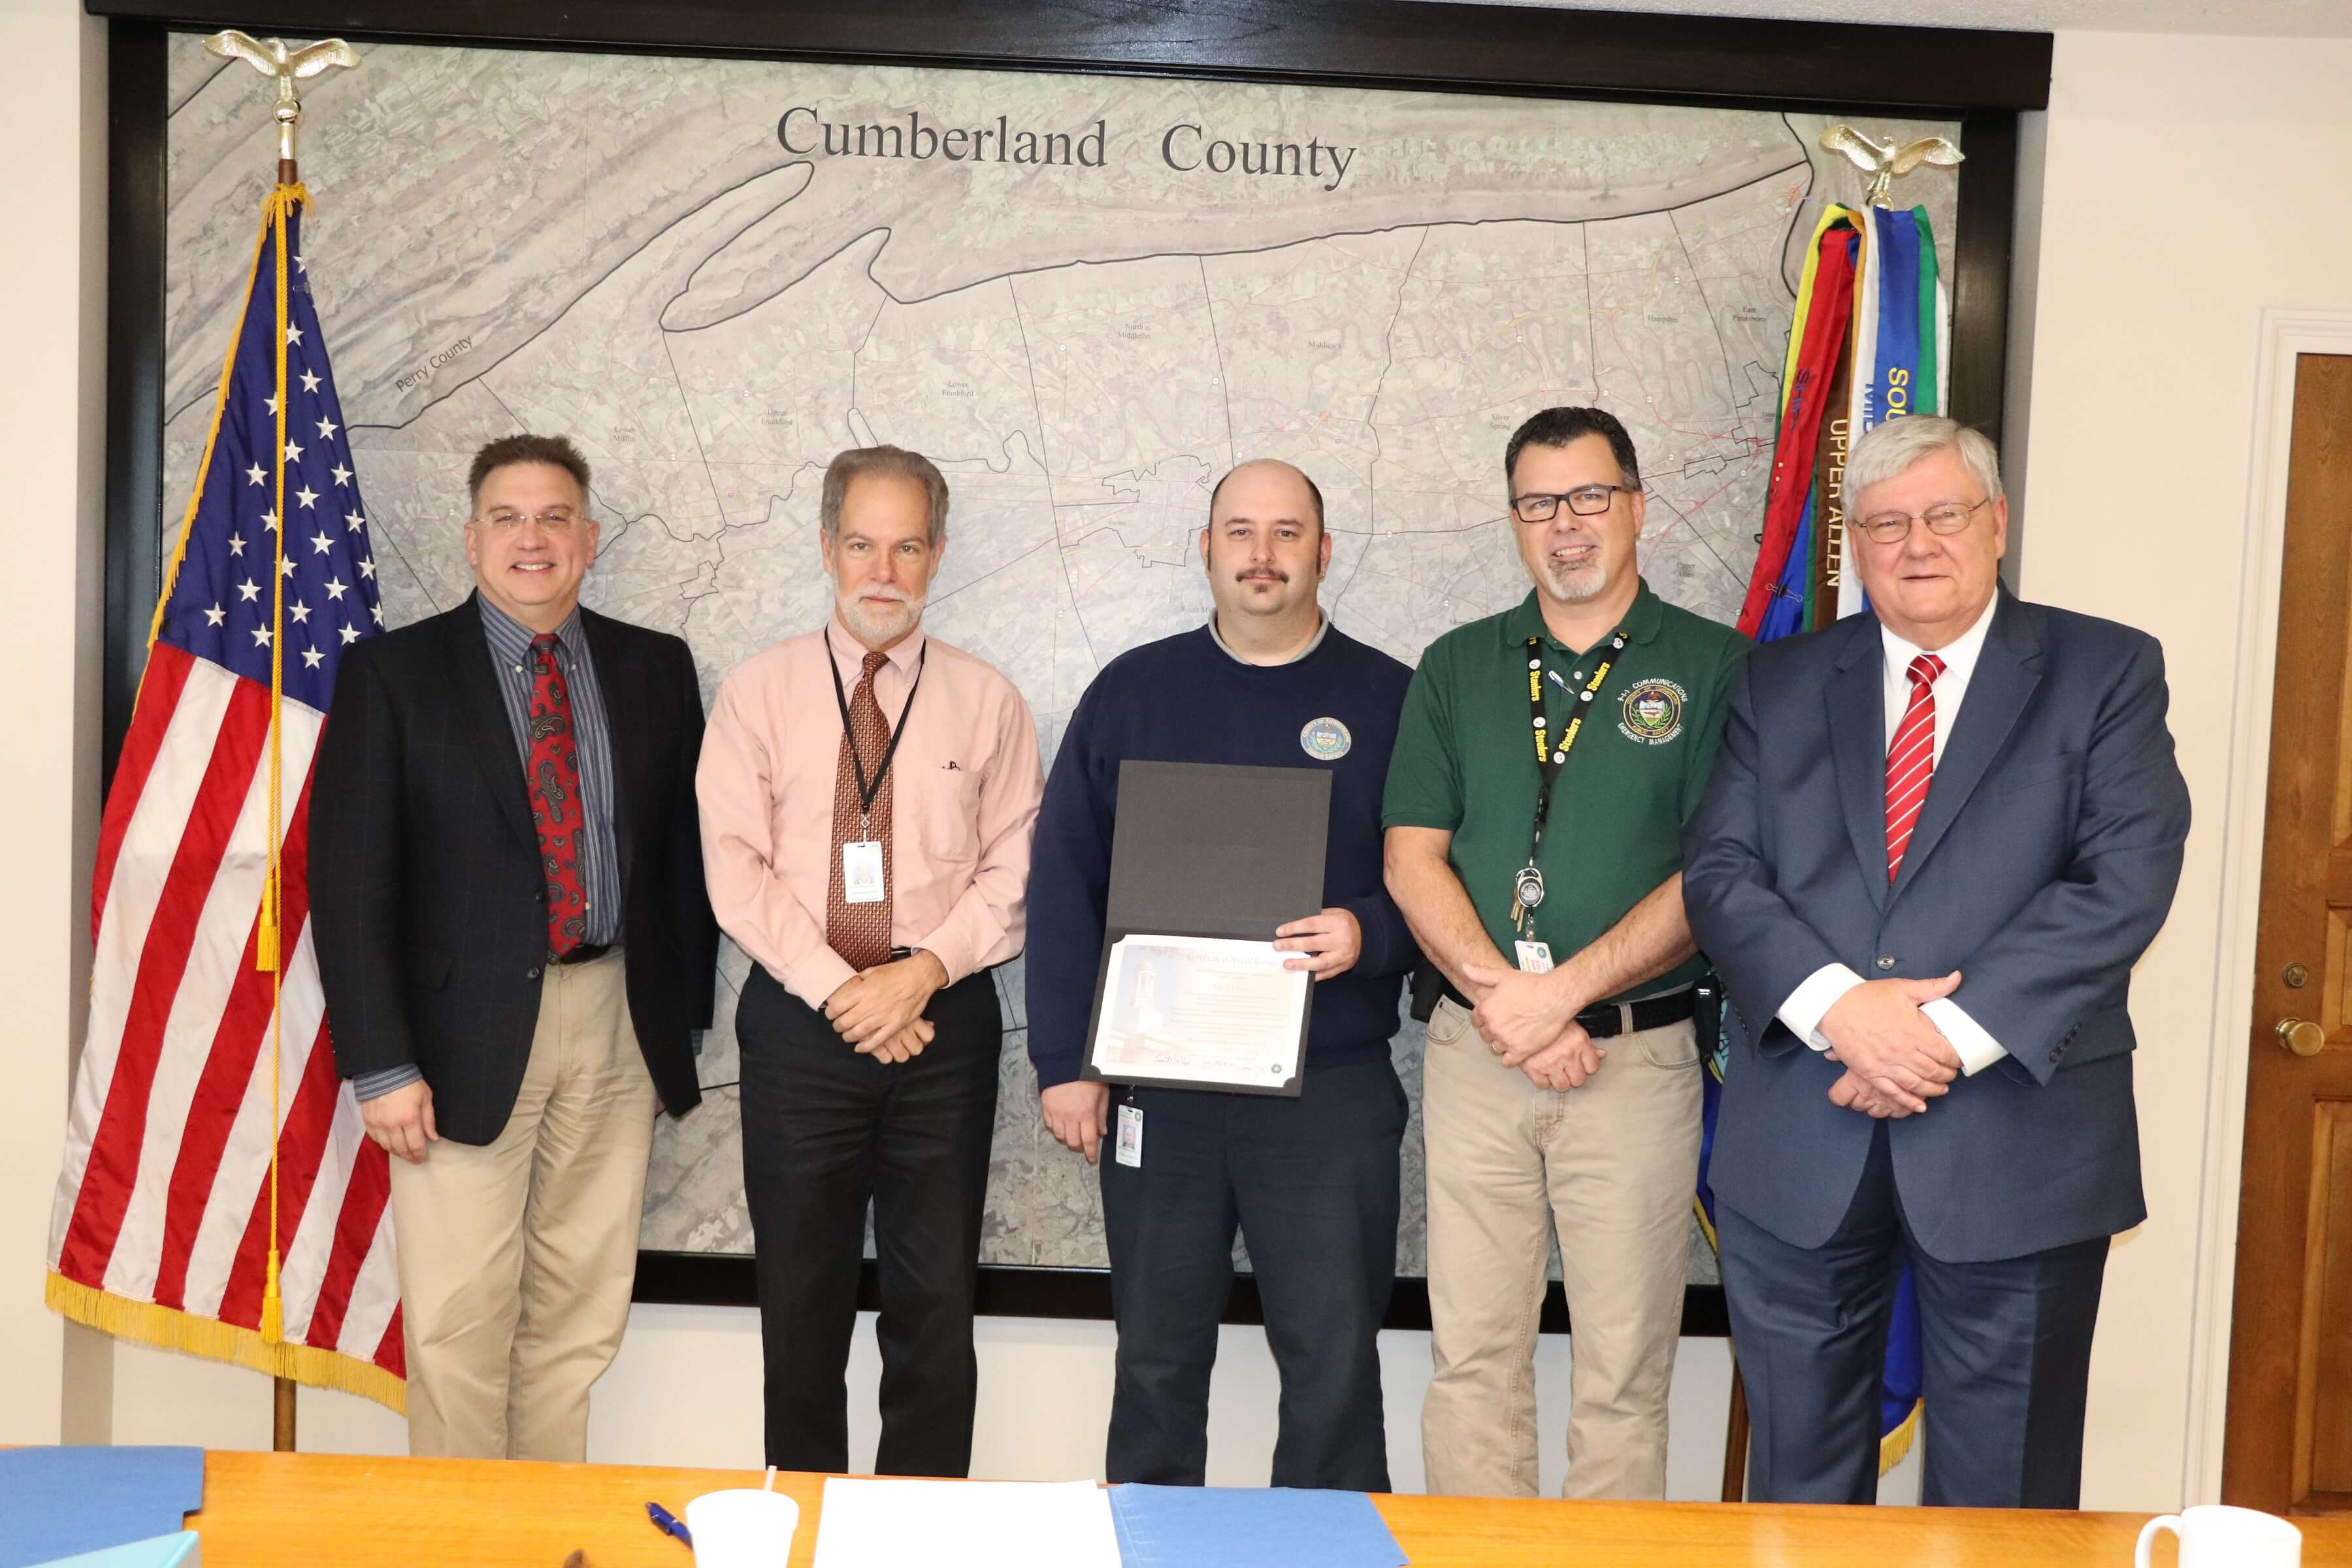 The Cumberland County Commissioners today recognized Dispatcher Seth Munson, for saving a 7-week-old